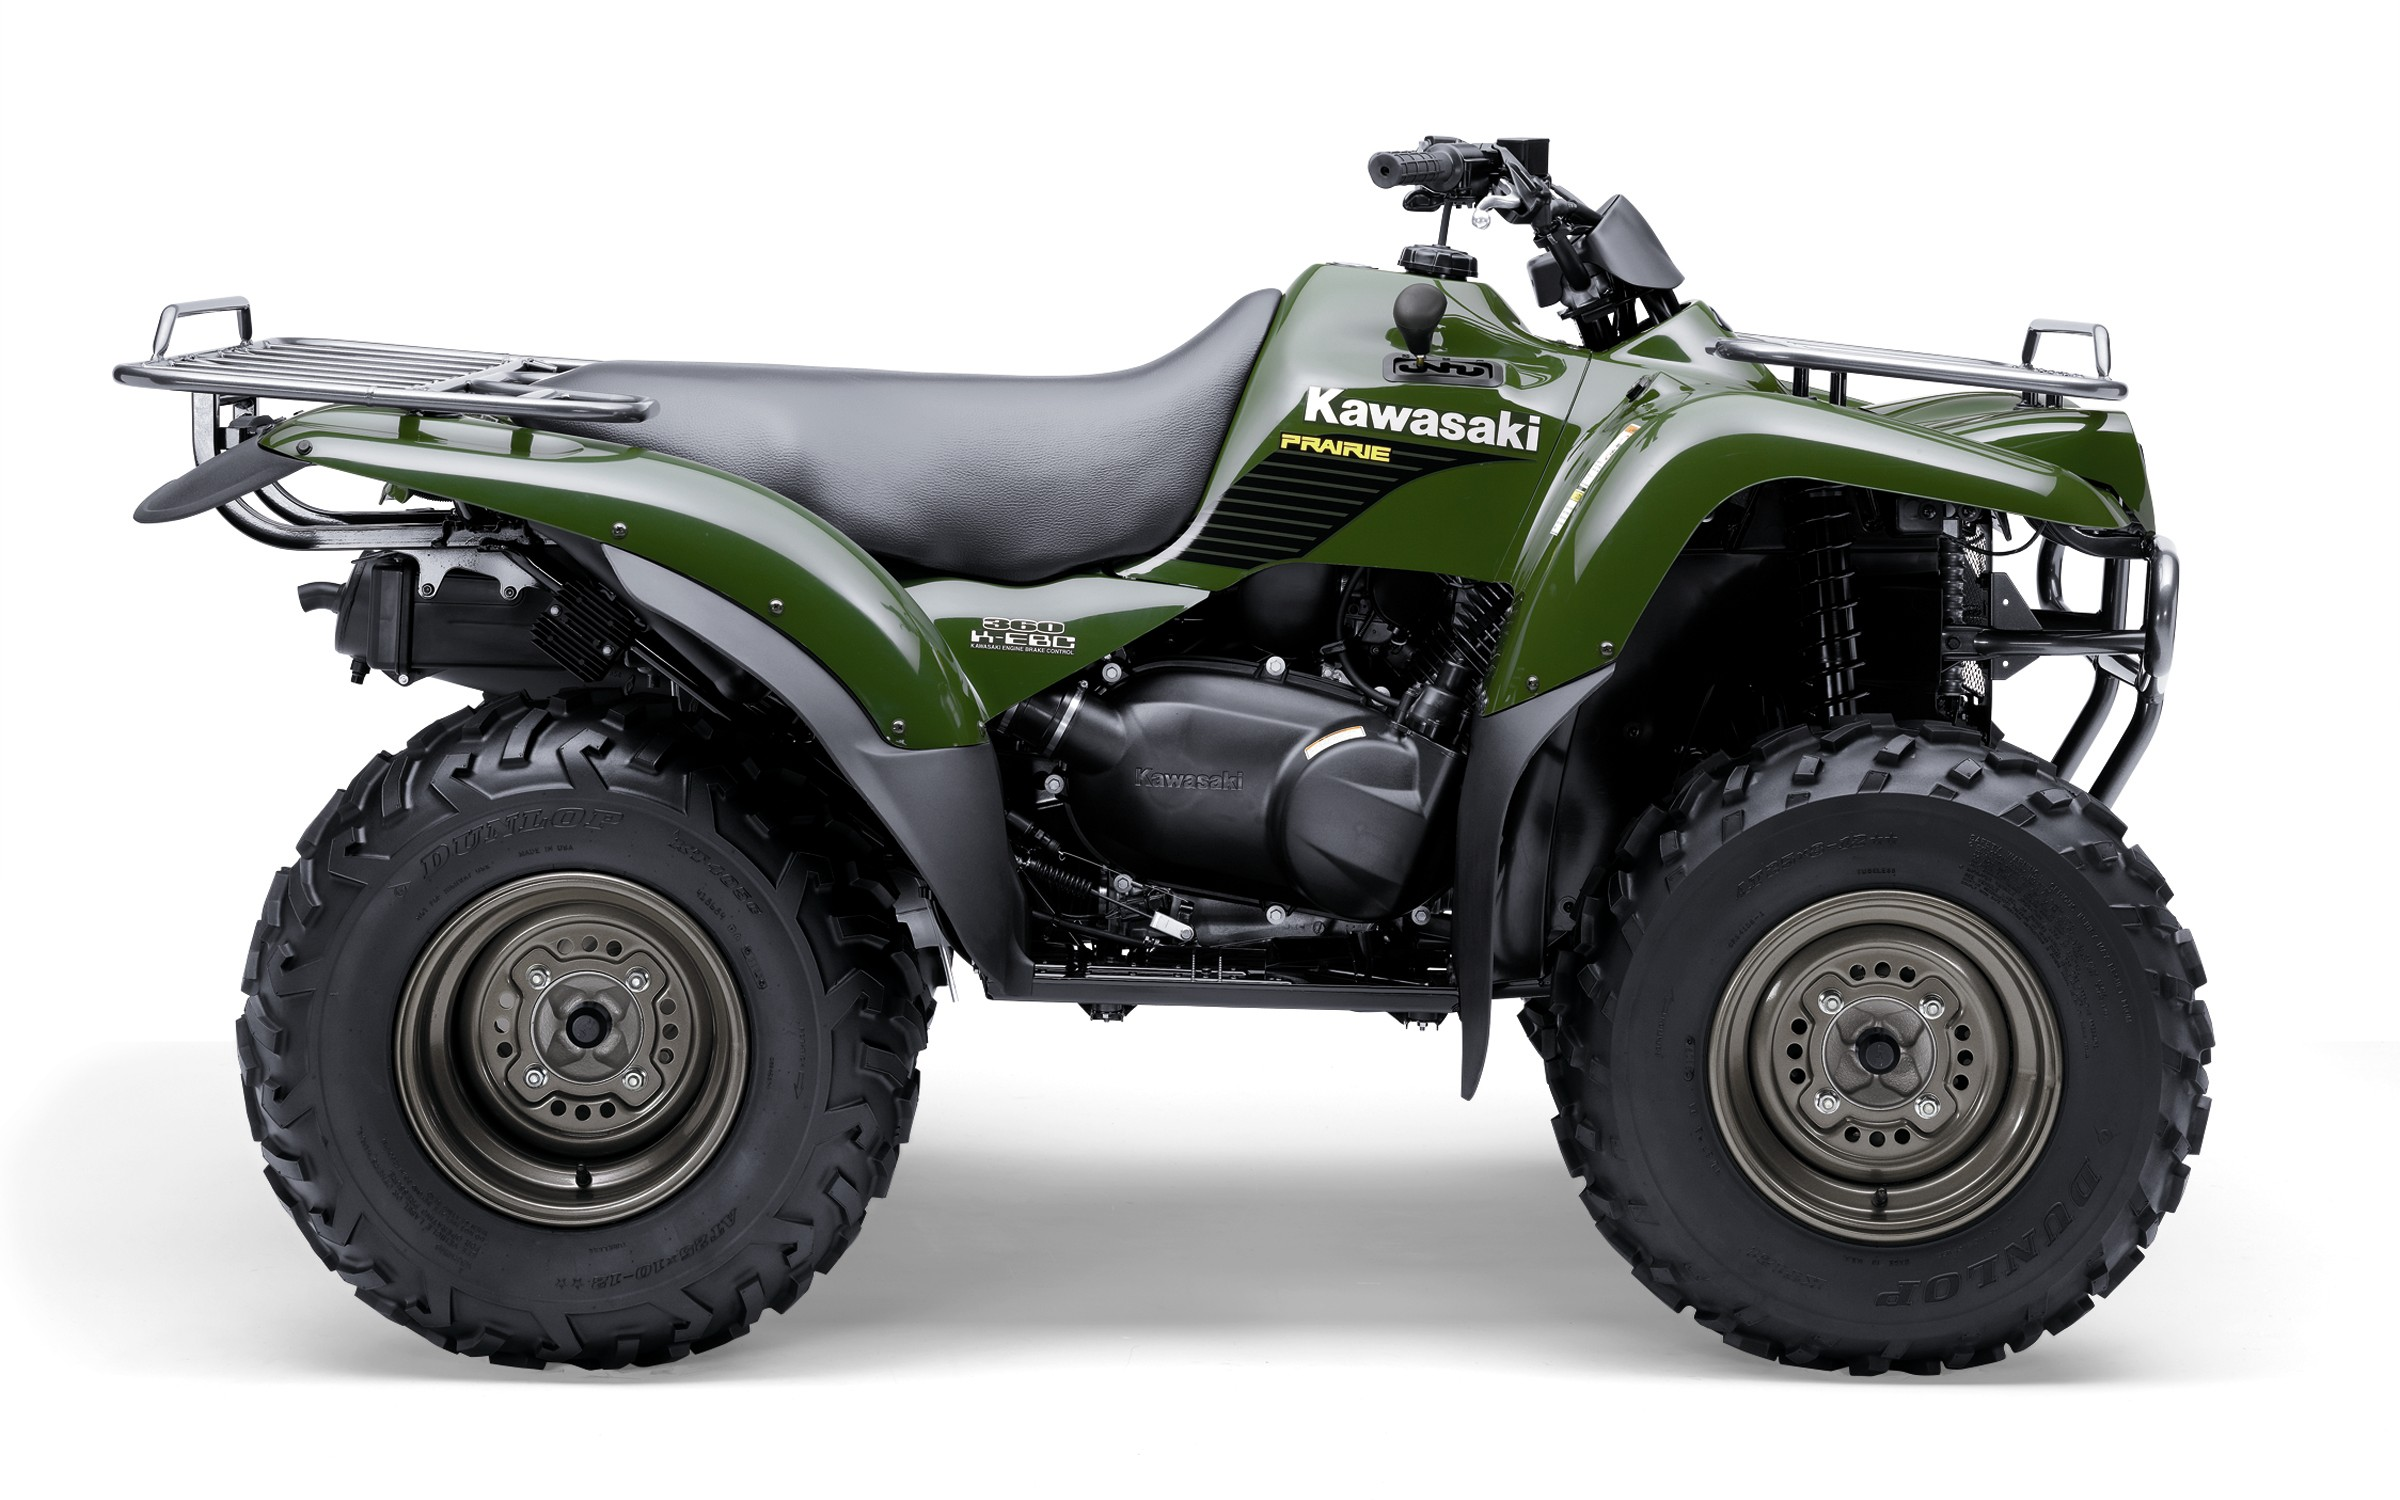 cpsc kawasaki motors corp u s a announce recall of atvs cpsc gov rh cpsc gov kawasaki prairie 360 manual free download kawasaki prairie 360 4x4 manual